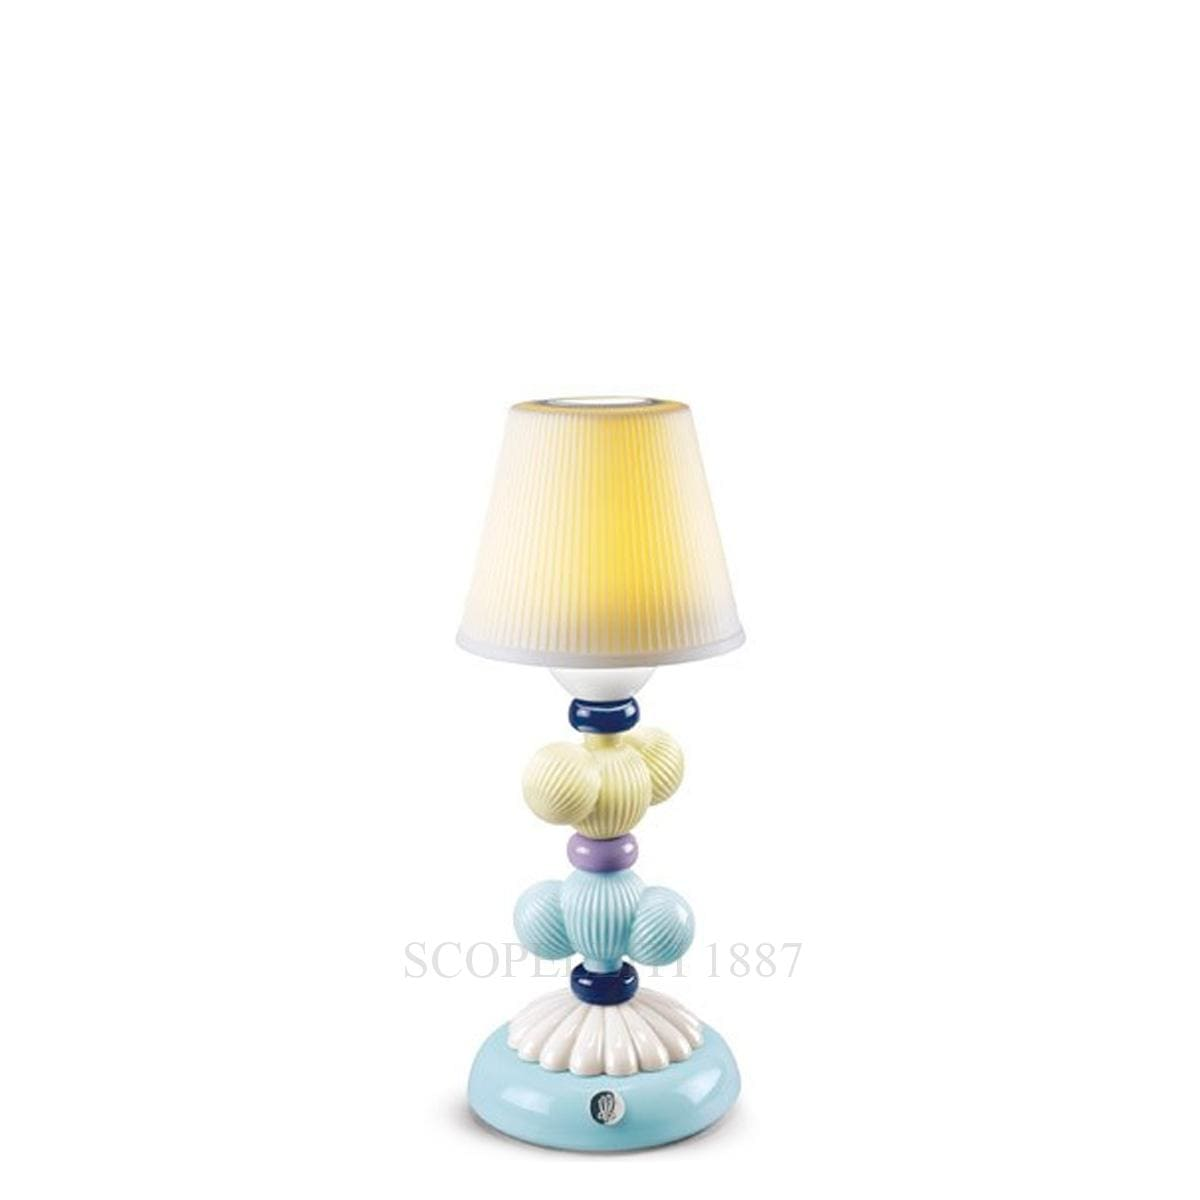 lladro cactus firefly designer table lamp yellow and blue